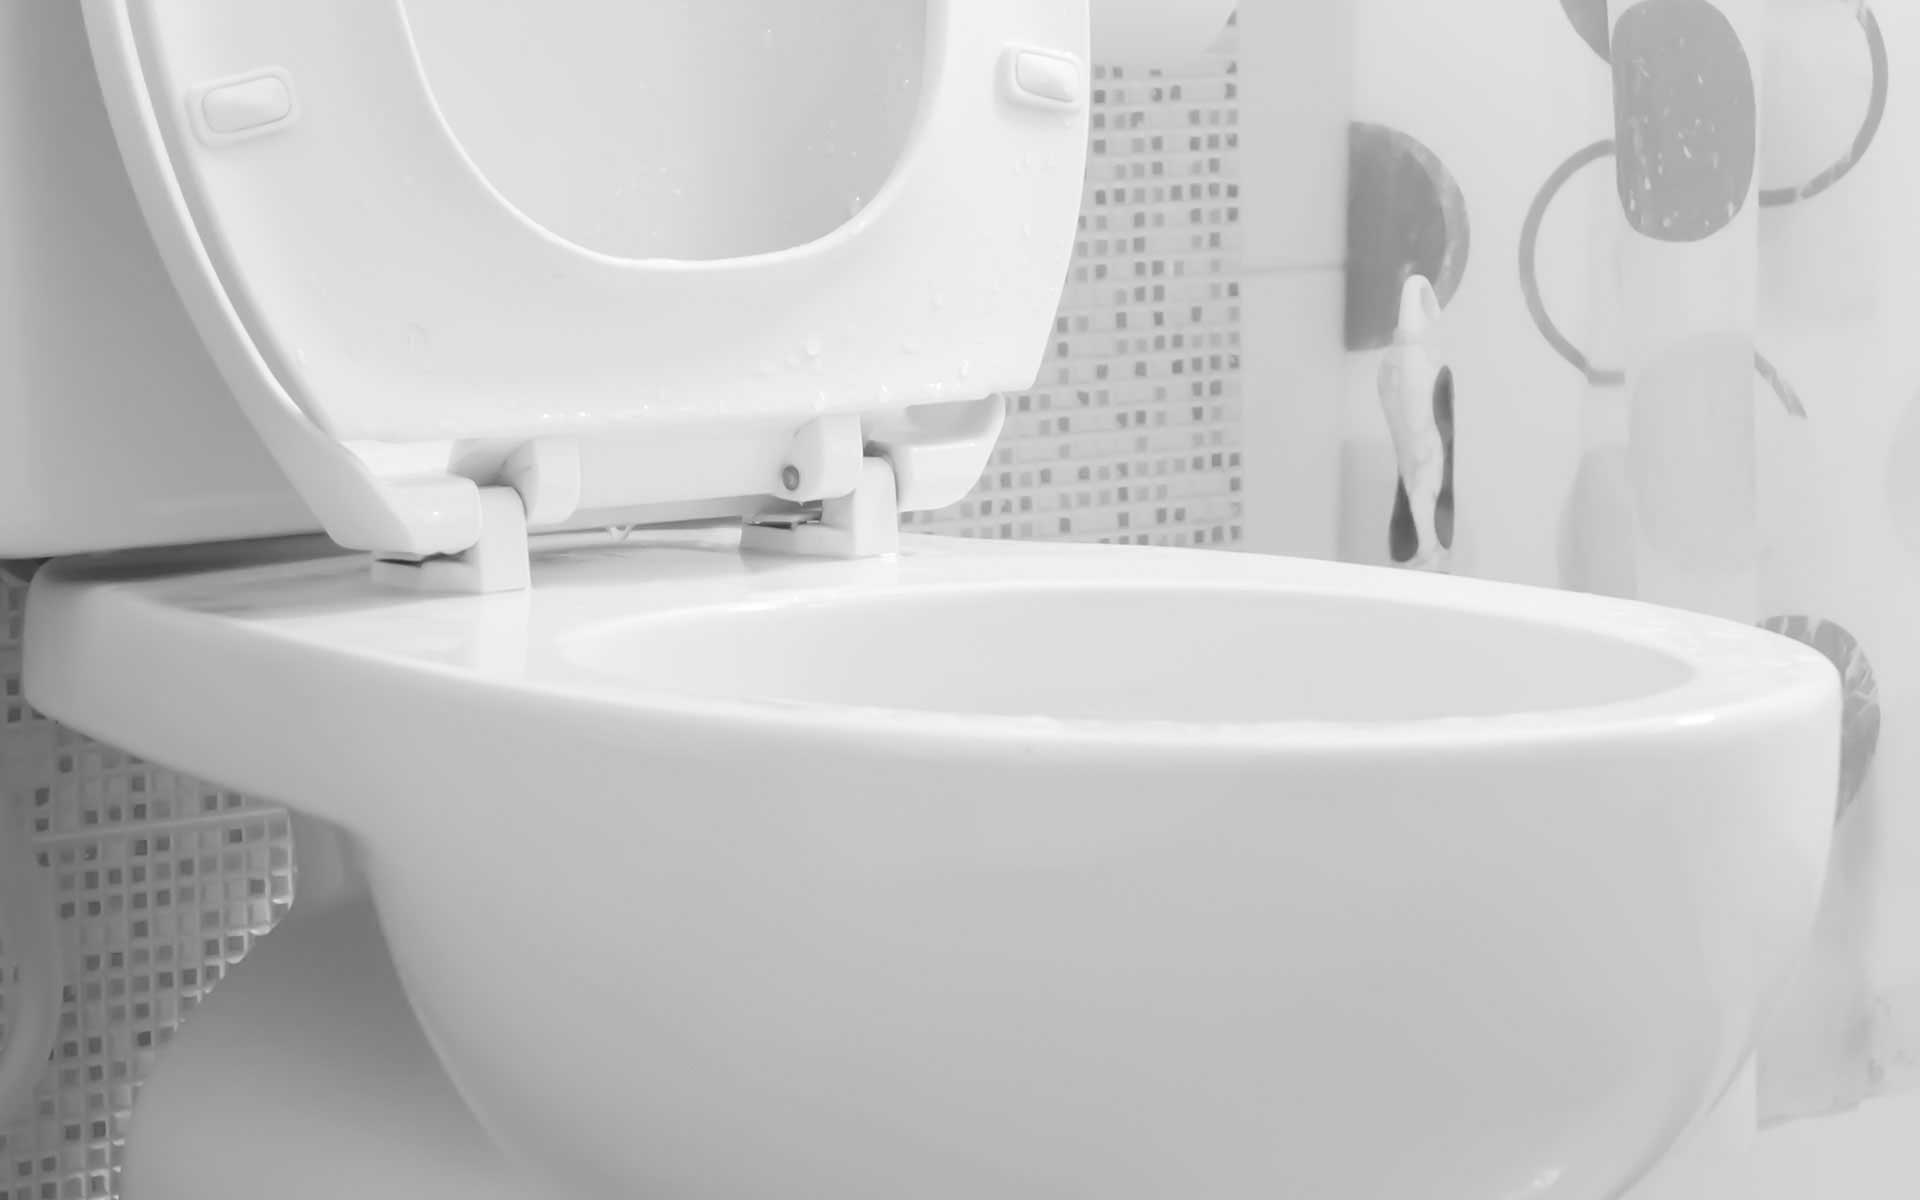 Lakewood Toilet Repair